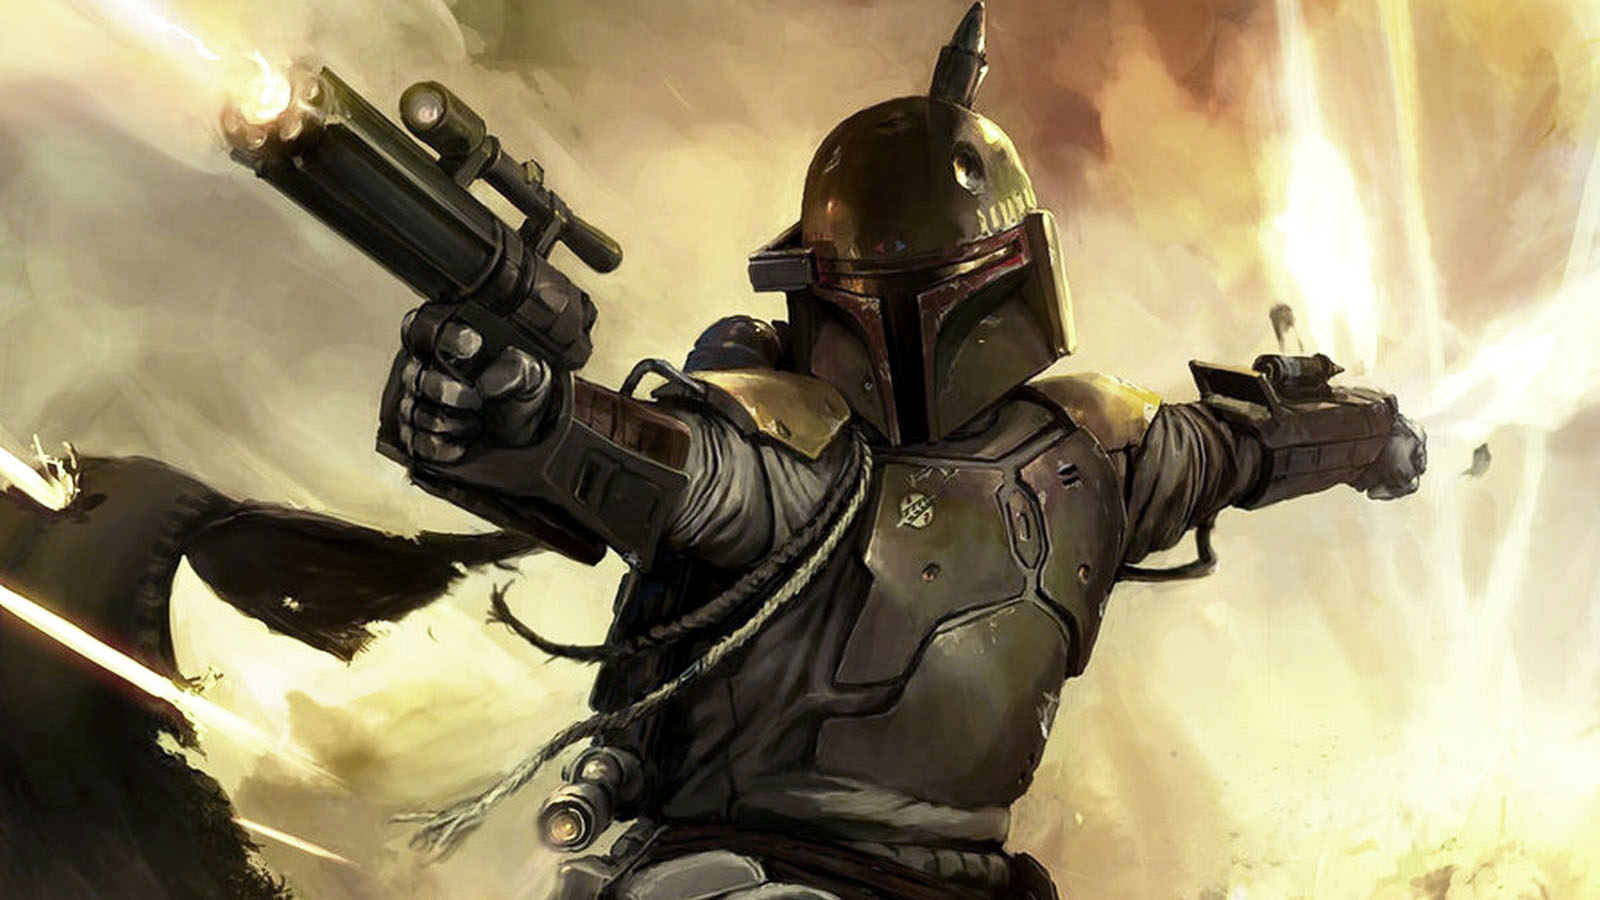 Boba Fett Black Star Wars Bounty Hunter Art 1600x900 Wallpaper Teahub Io